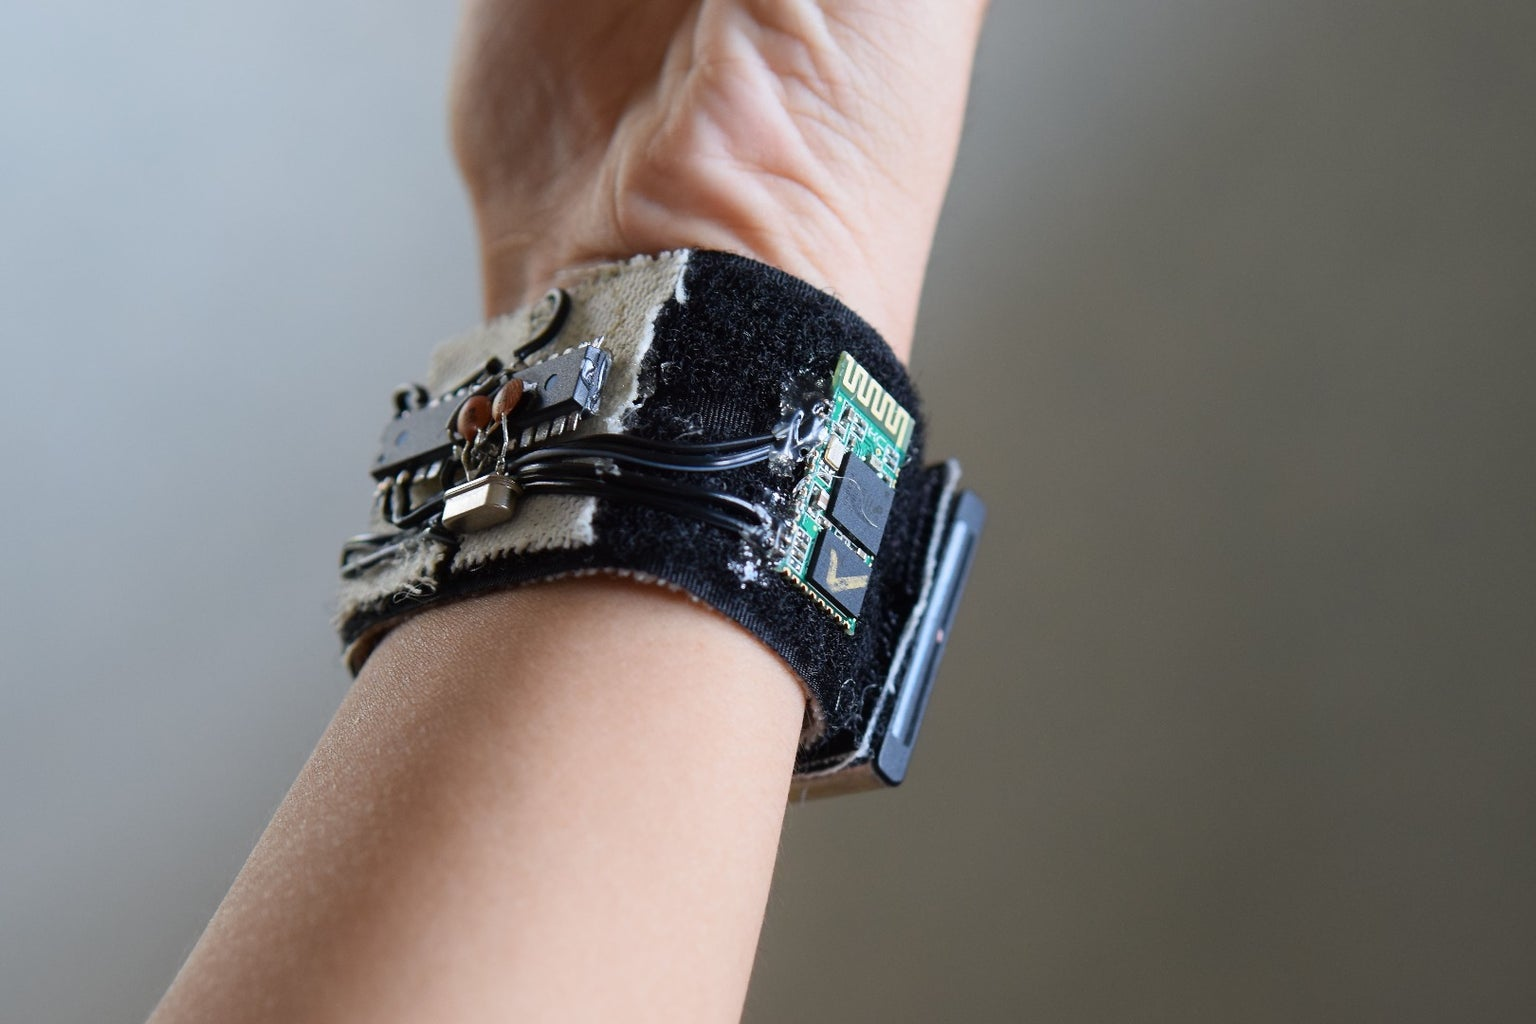 HealthBand: a Remotely Monitored Health Status Bracelet